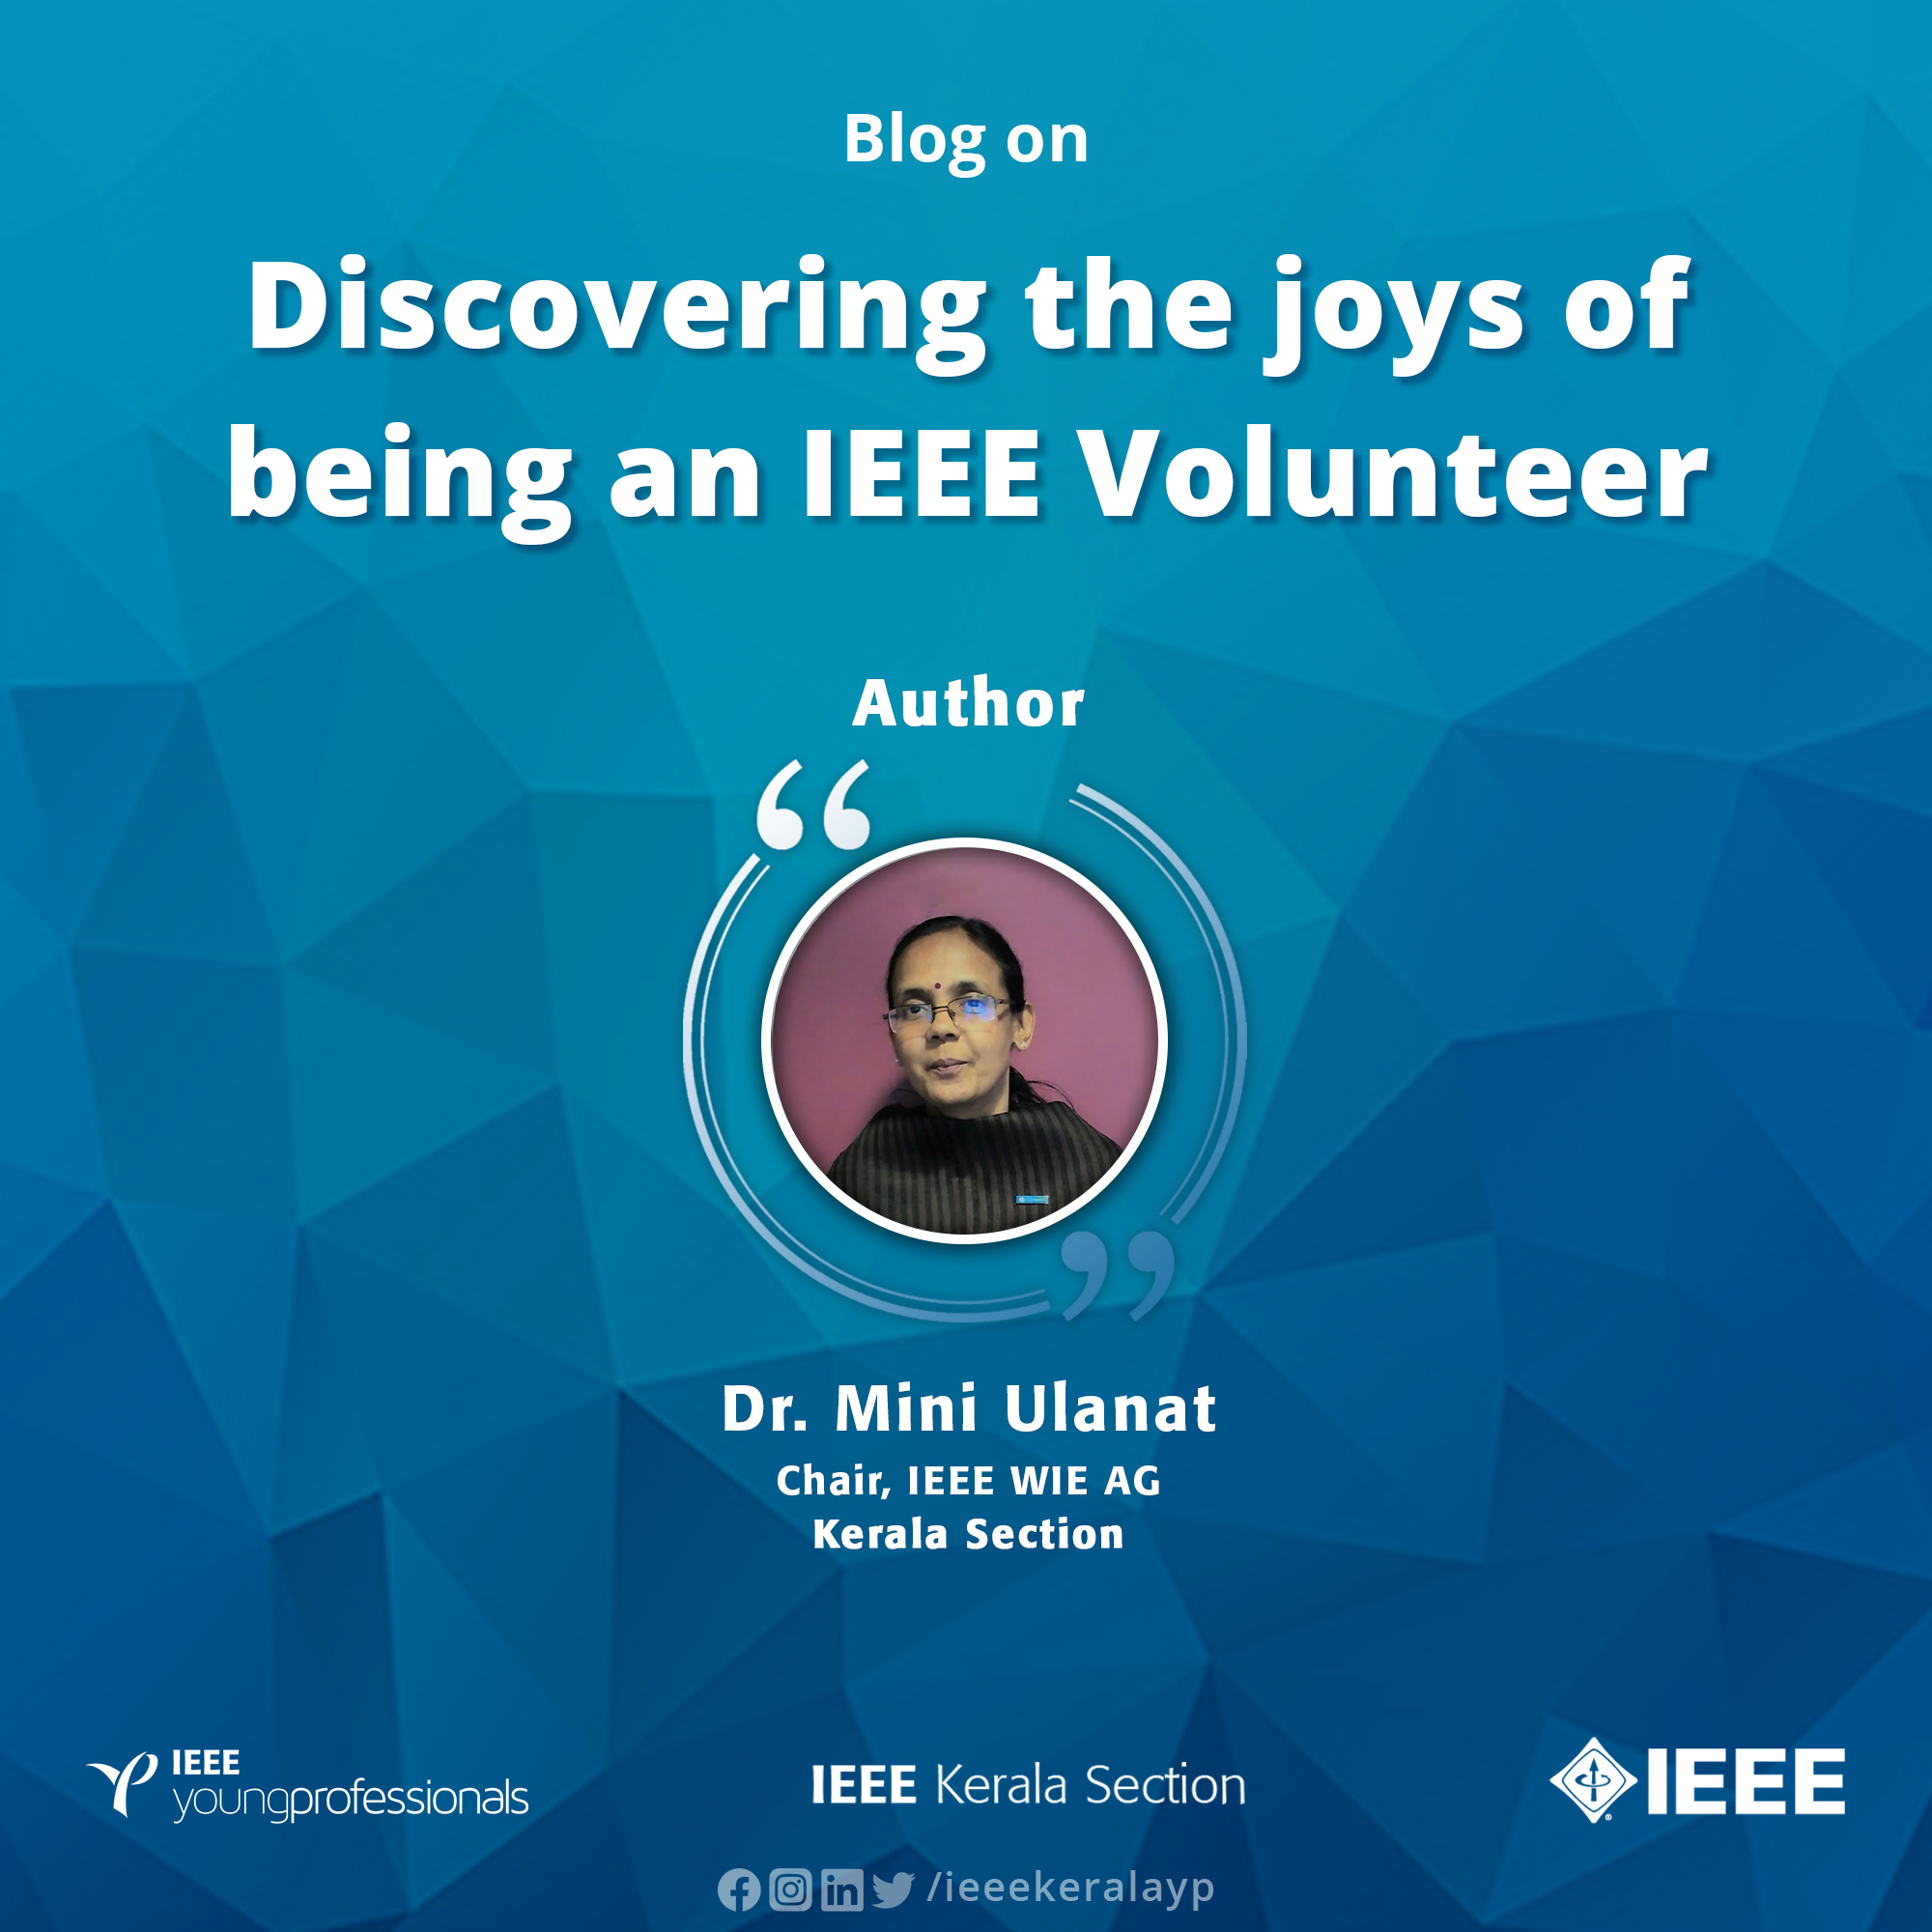 Discovering the joys of being an IEEE Volunteer